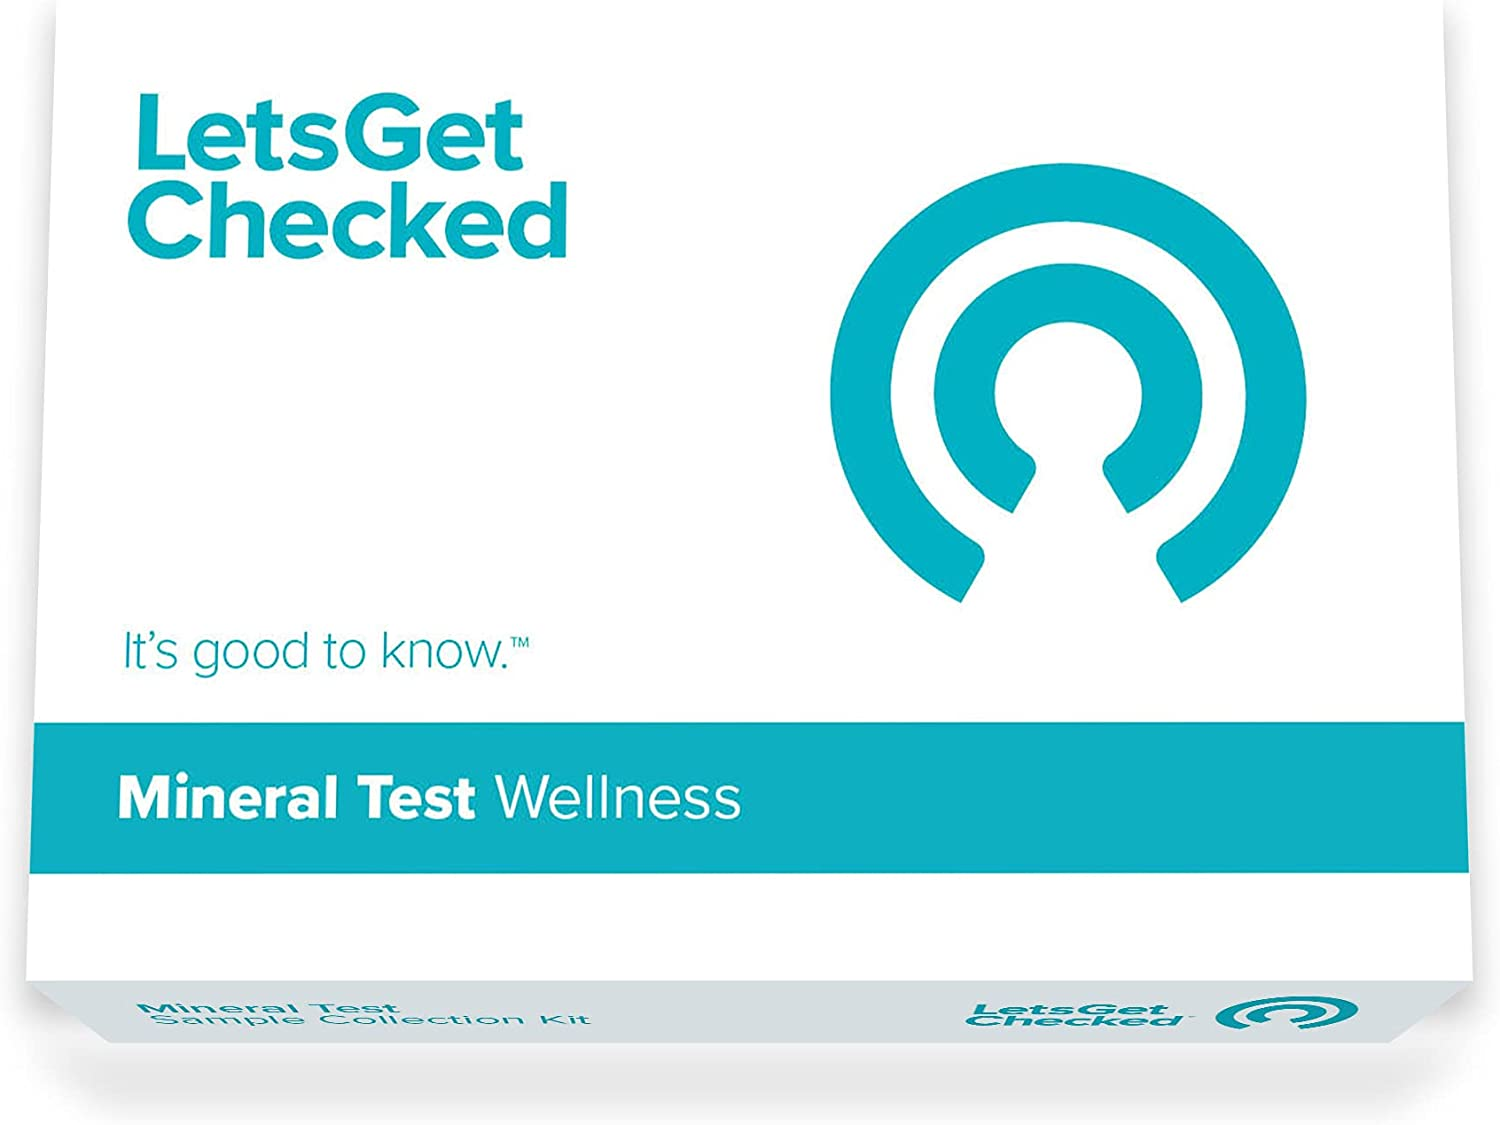 LetsGetChecked - at-Home Mineral Test   Private and Secure   CLIA Certified Labs   Online Results in 2-5 Days - (Not for NY Based)